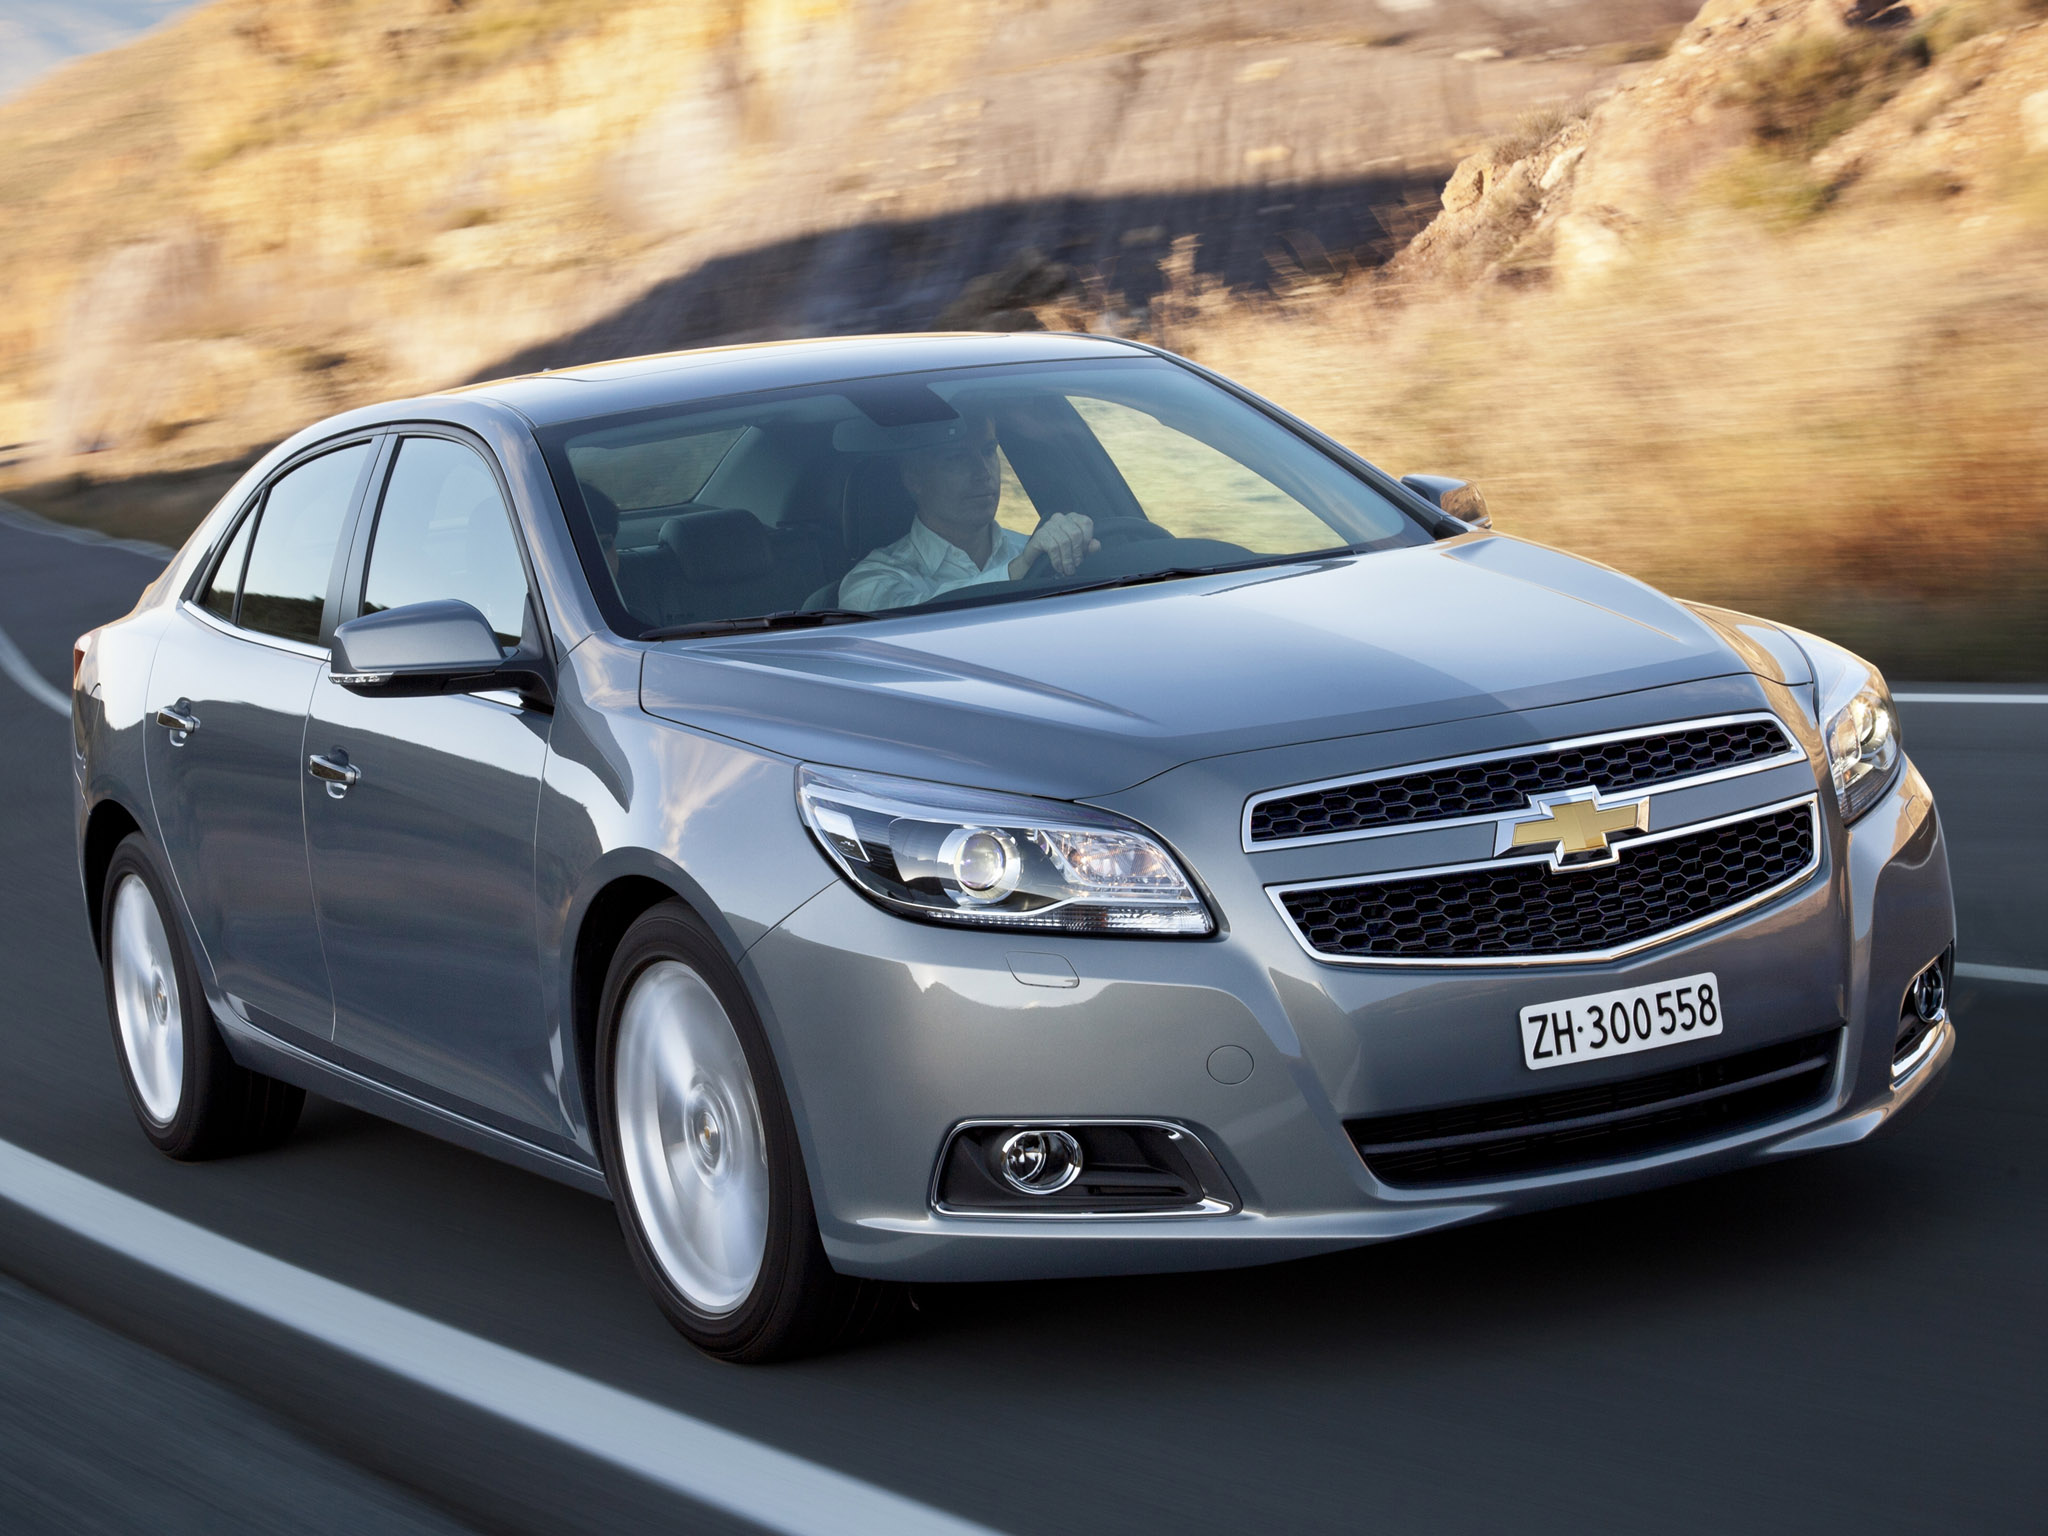 chevrolet malibu 2012 chevrolet malibu 2012 photo 35 car. Cars Review. Best American Auto & Cars Review